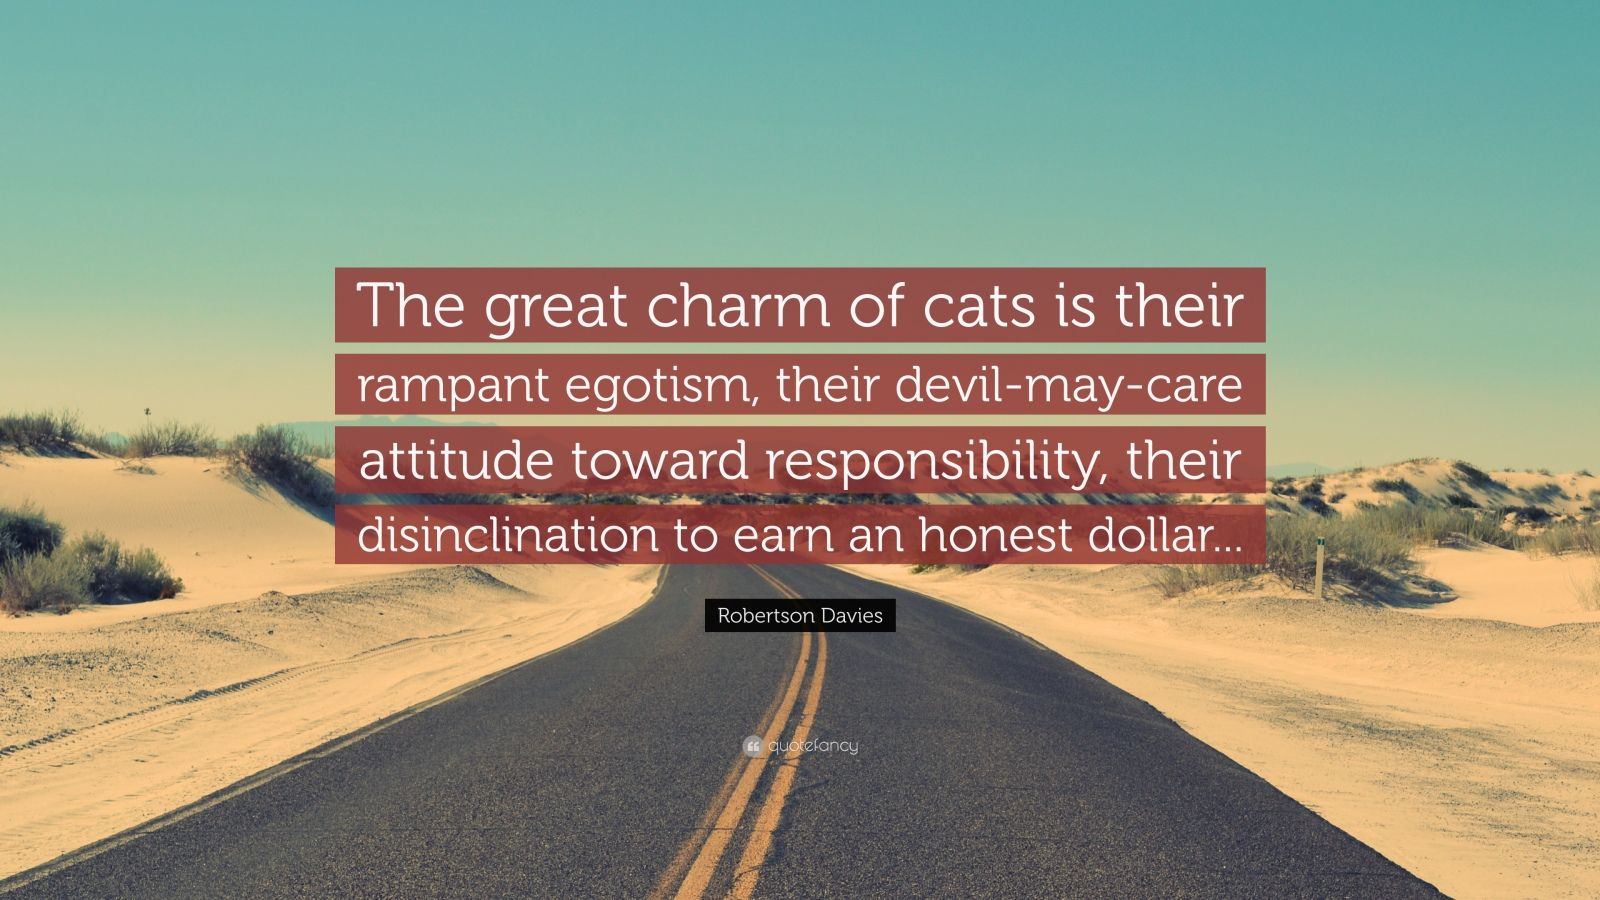 """Robertson Davies Quote: """"The great charm of cats is their rampant egotism, their devil-may-care attitude toward responsibility, their disinclination to earn an honest dollar..."""""""